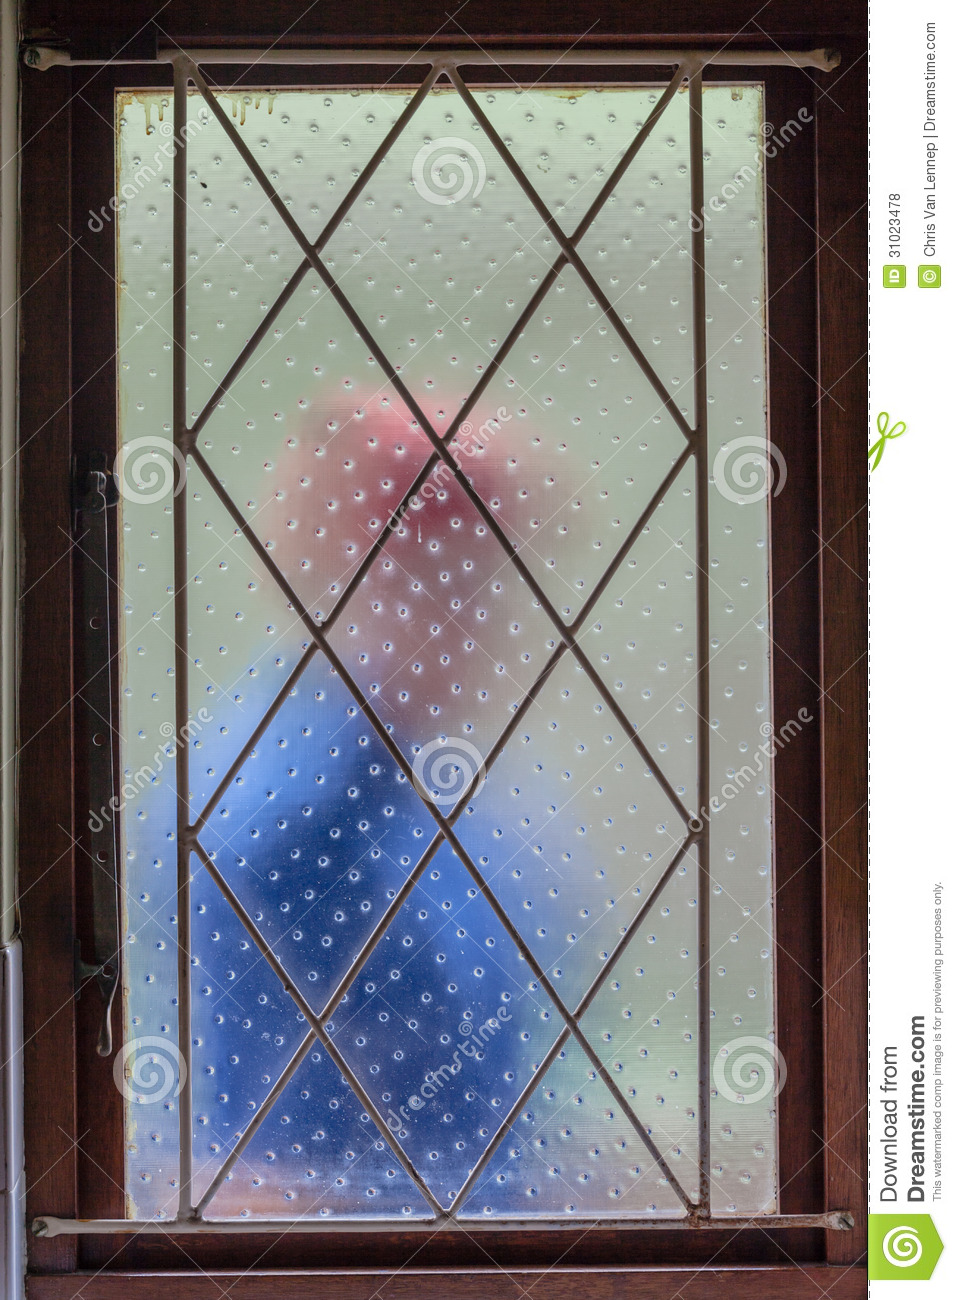 House burglar intruder window bars royalty free stock for Window bars design